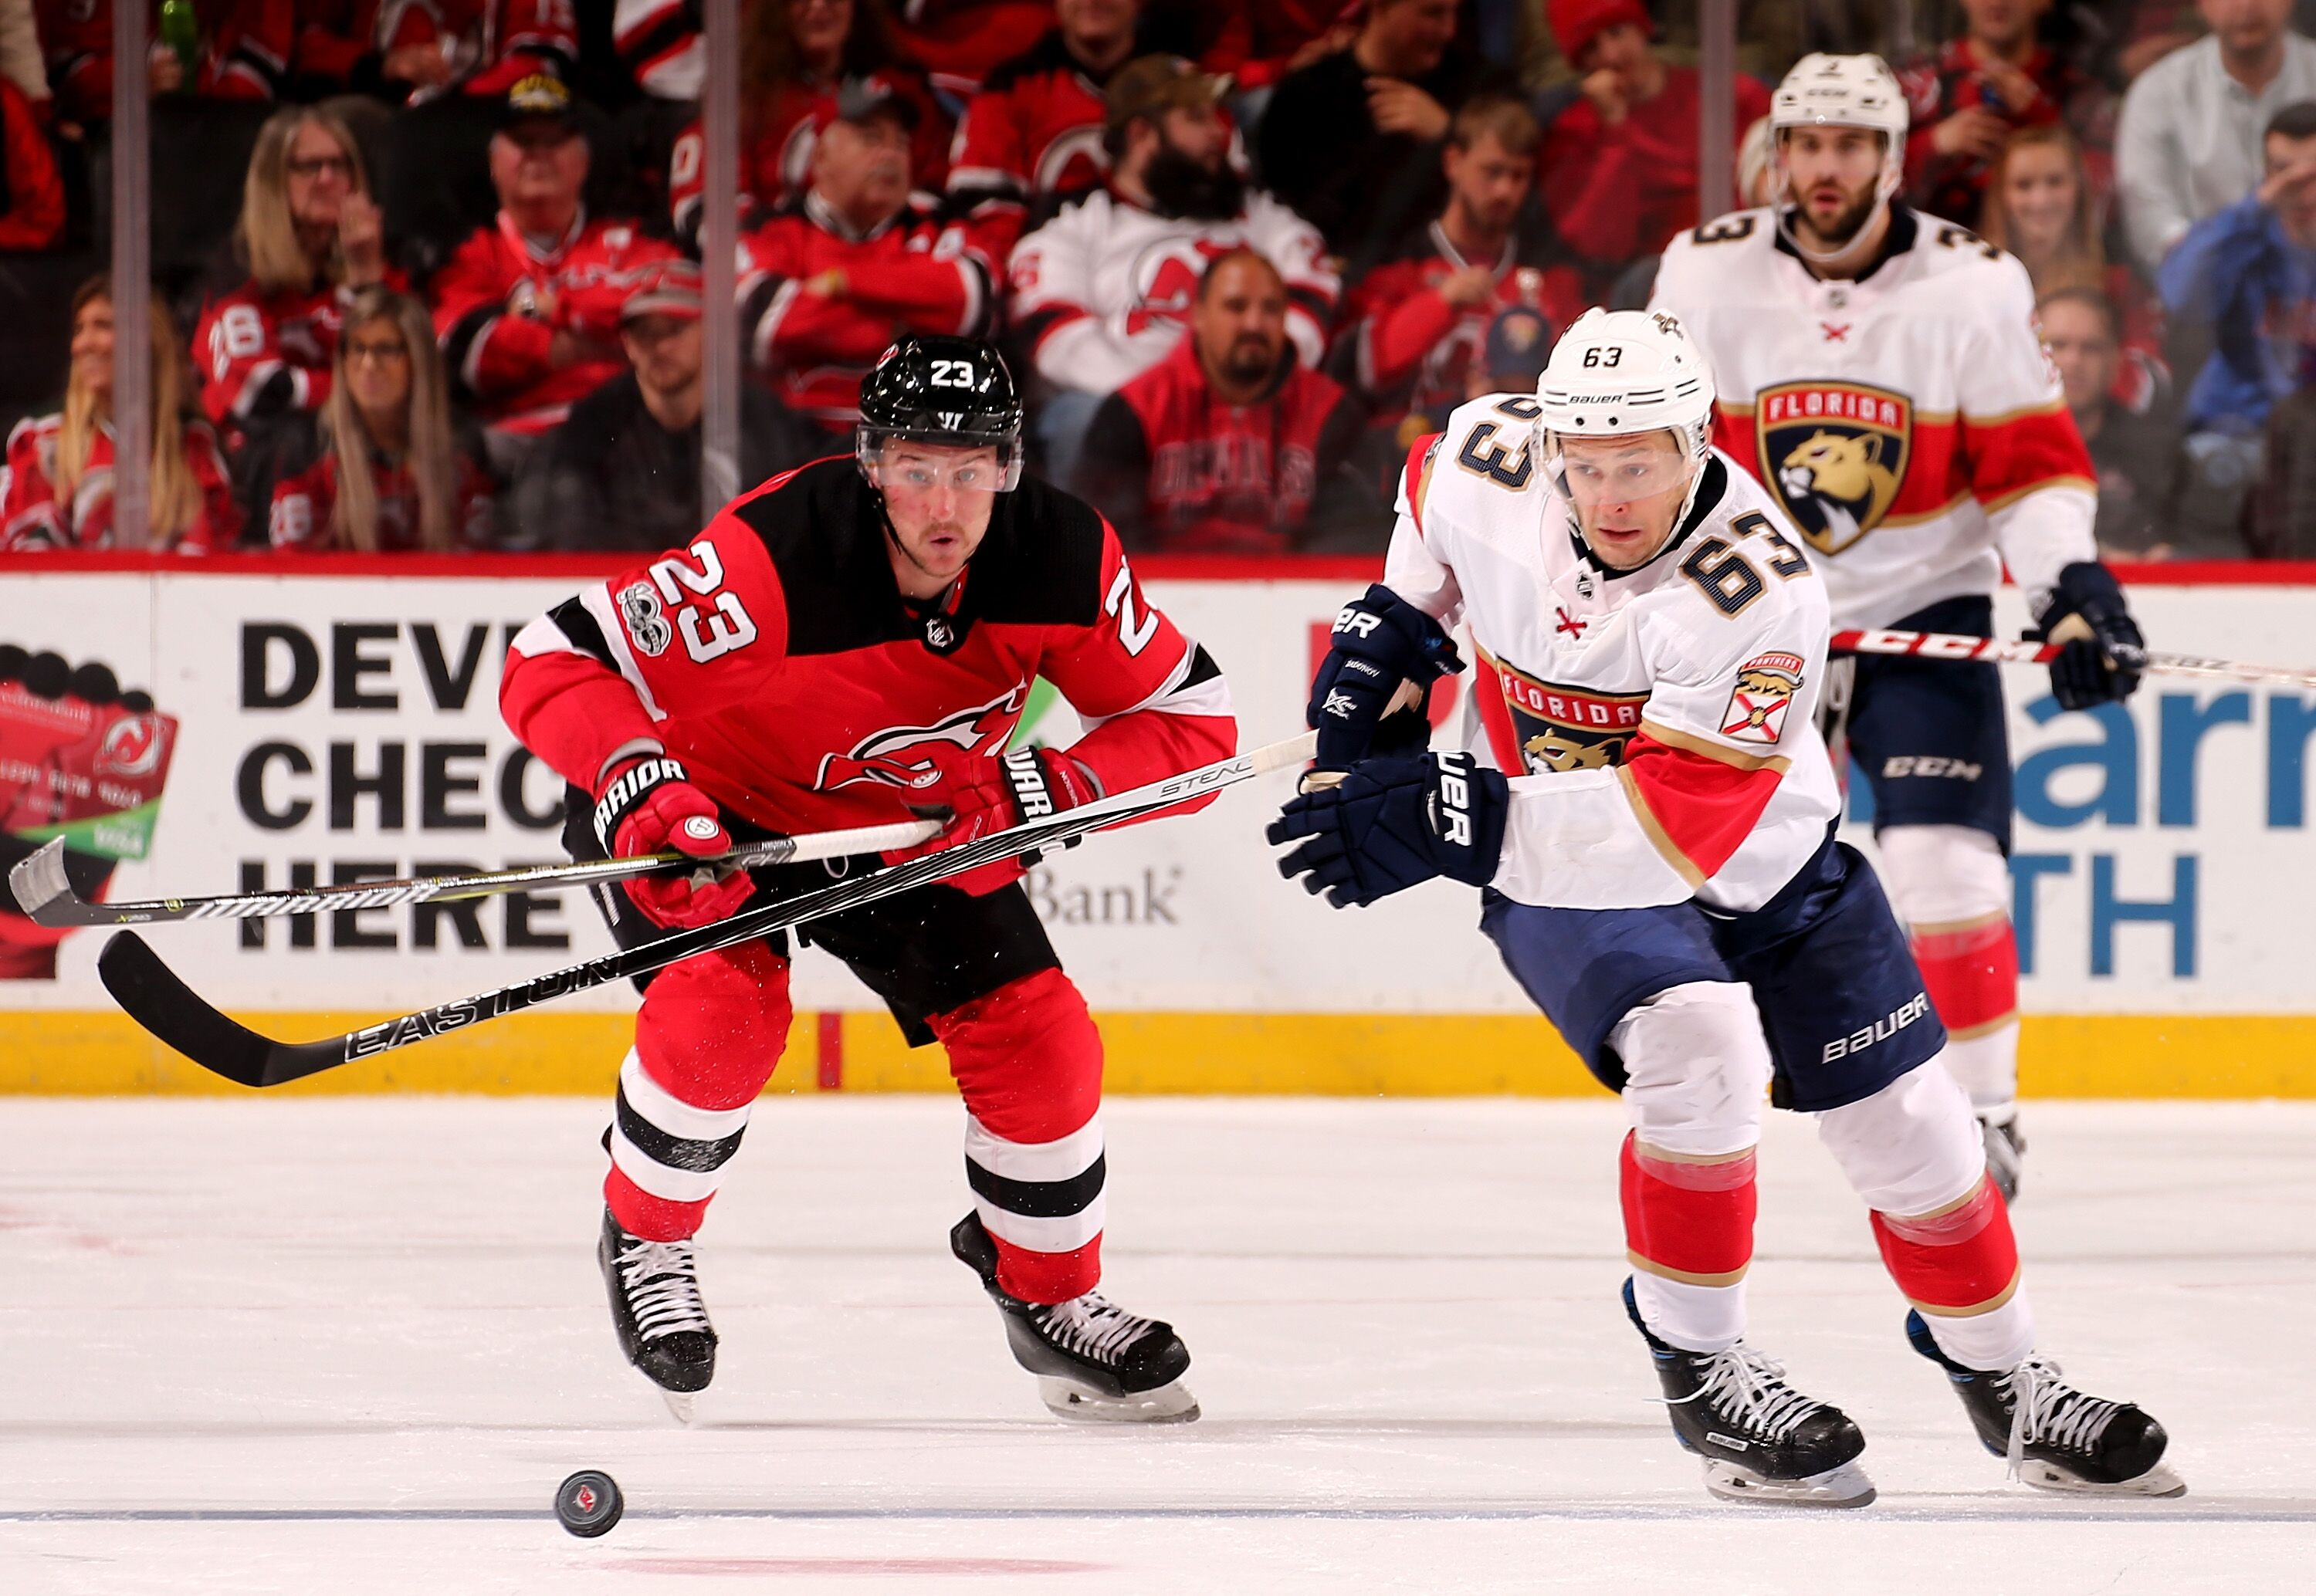 873057542-florida-panthers-v-new-jersey-devils.jpg